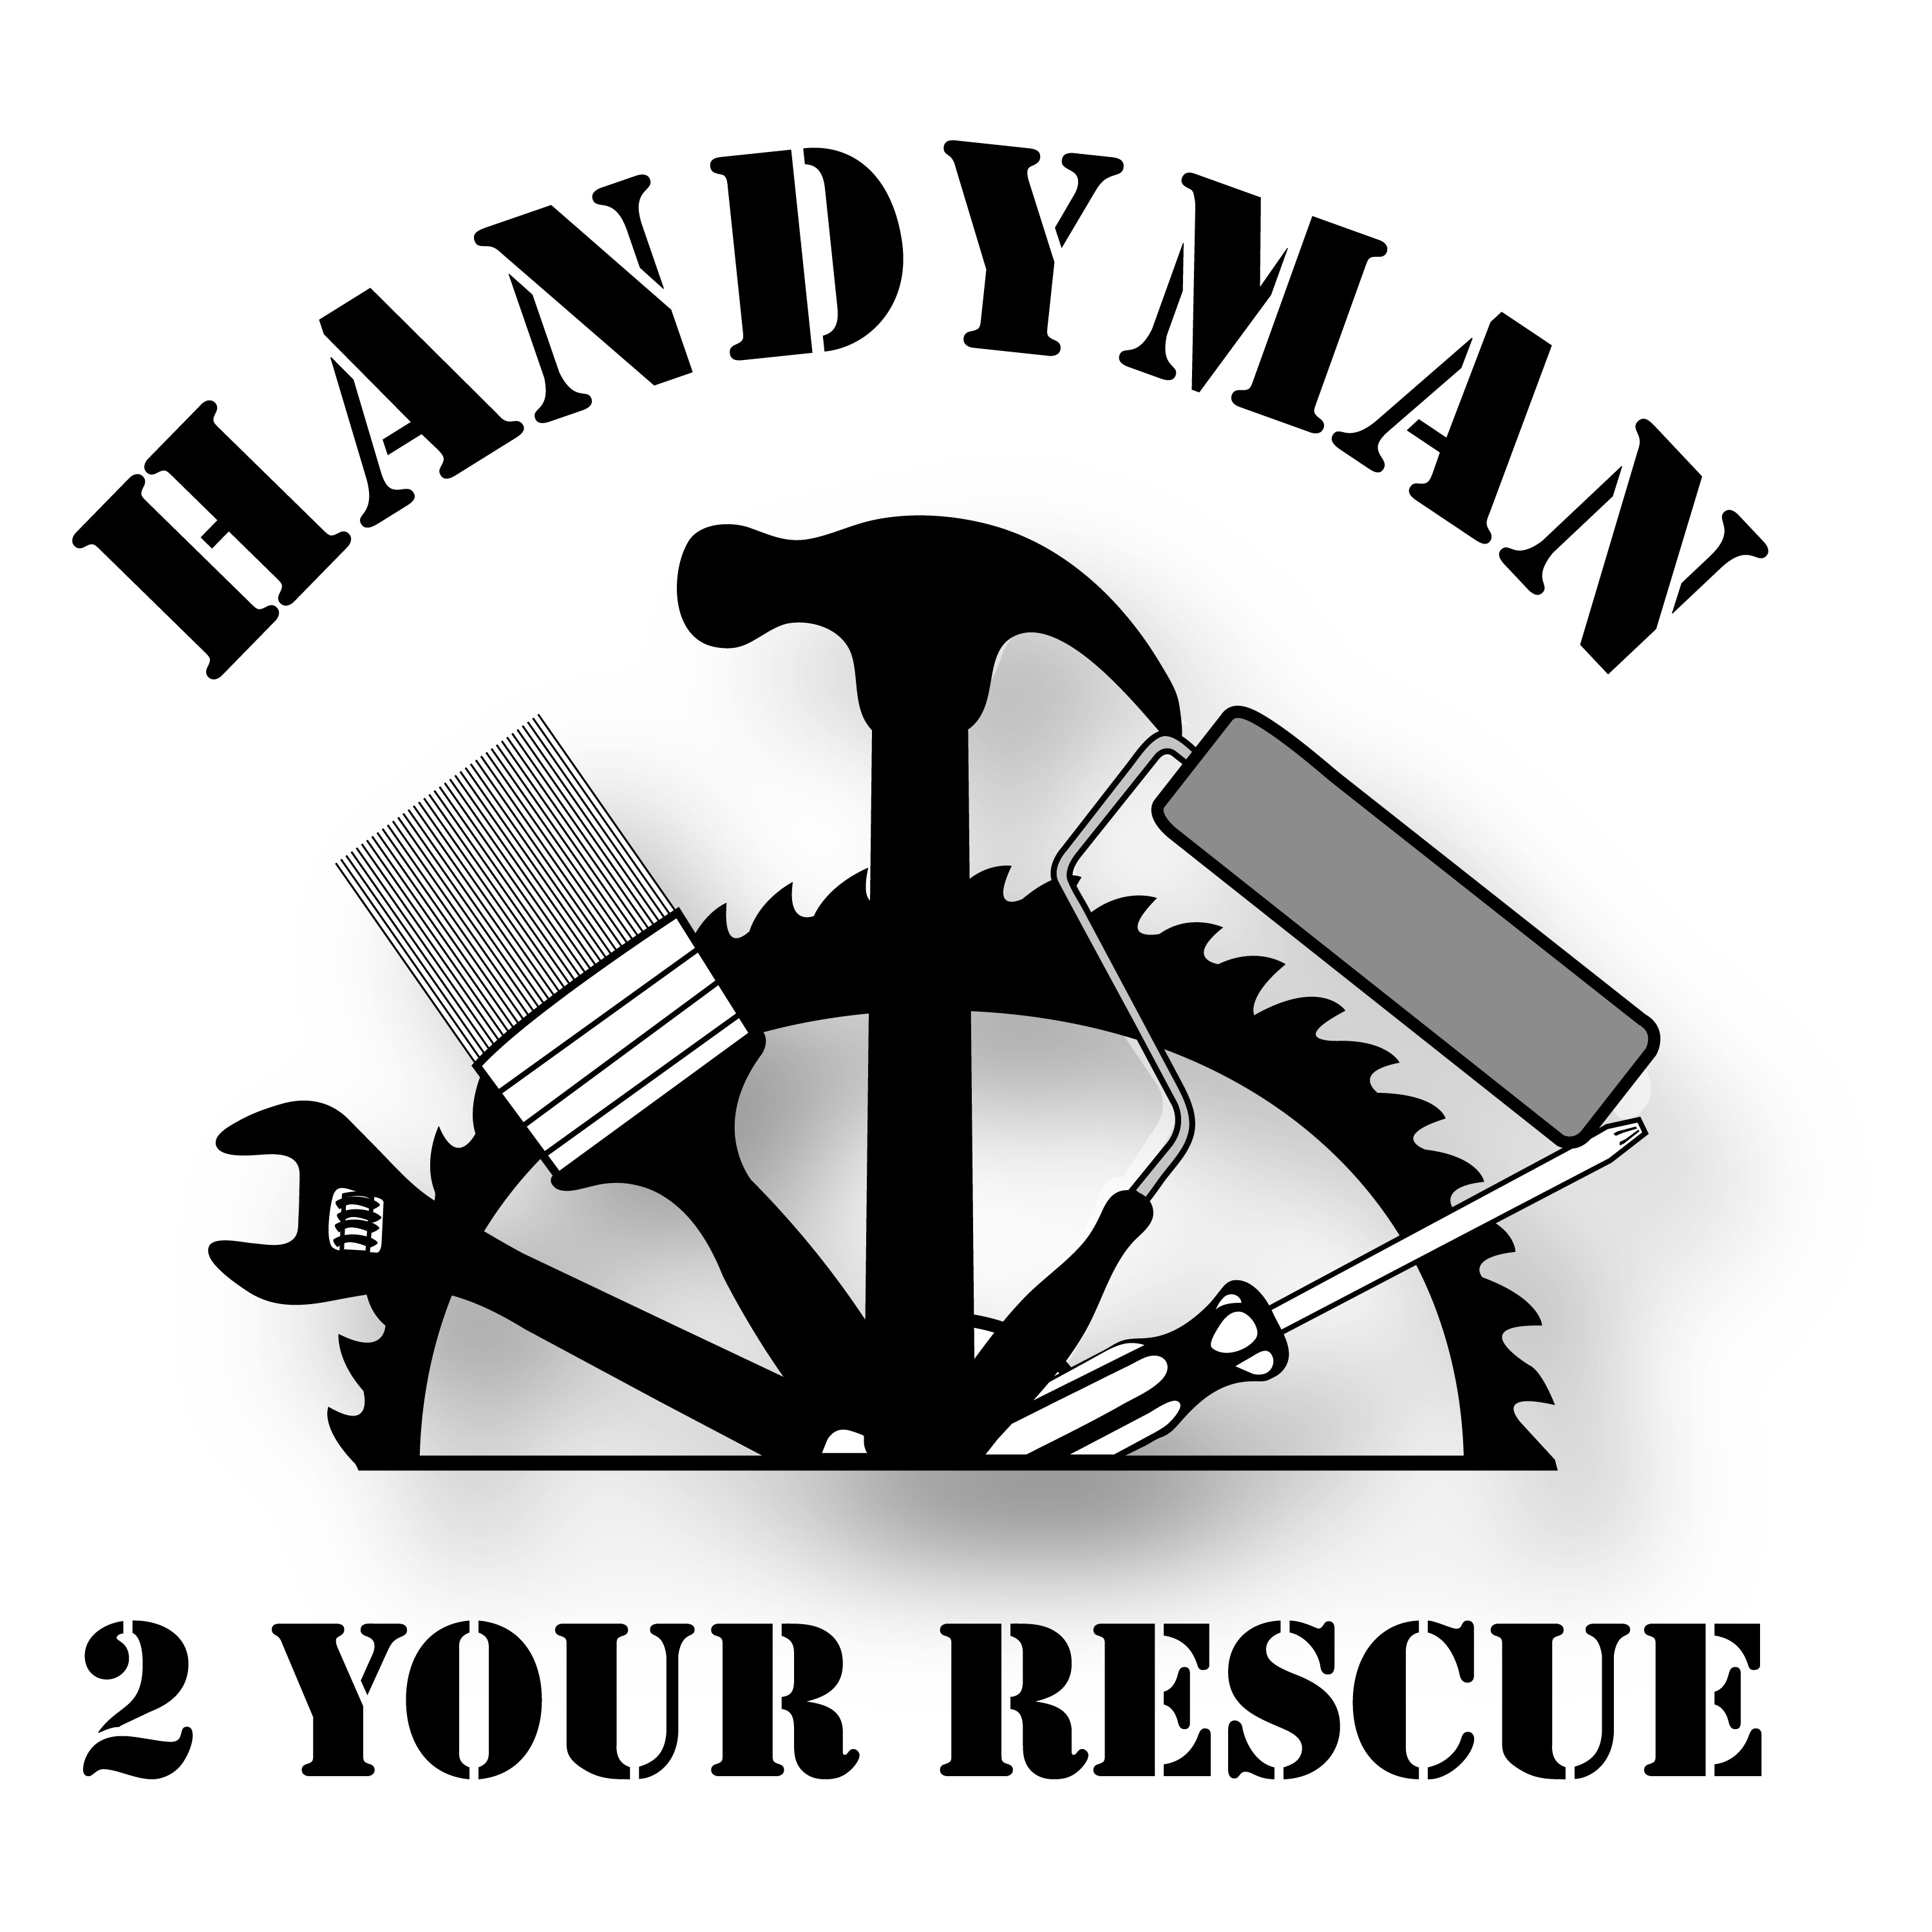 Home « Handyman 2 Your Rescue ...